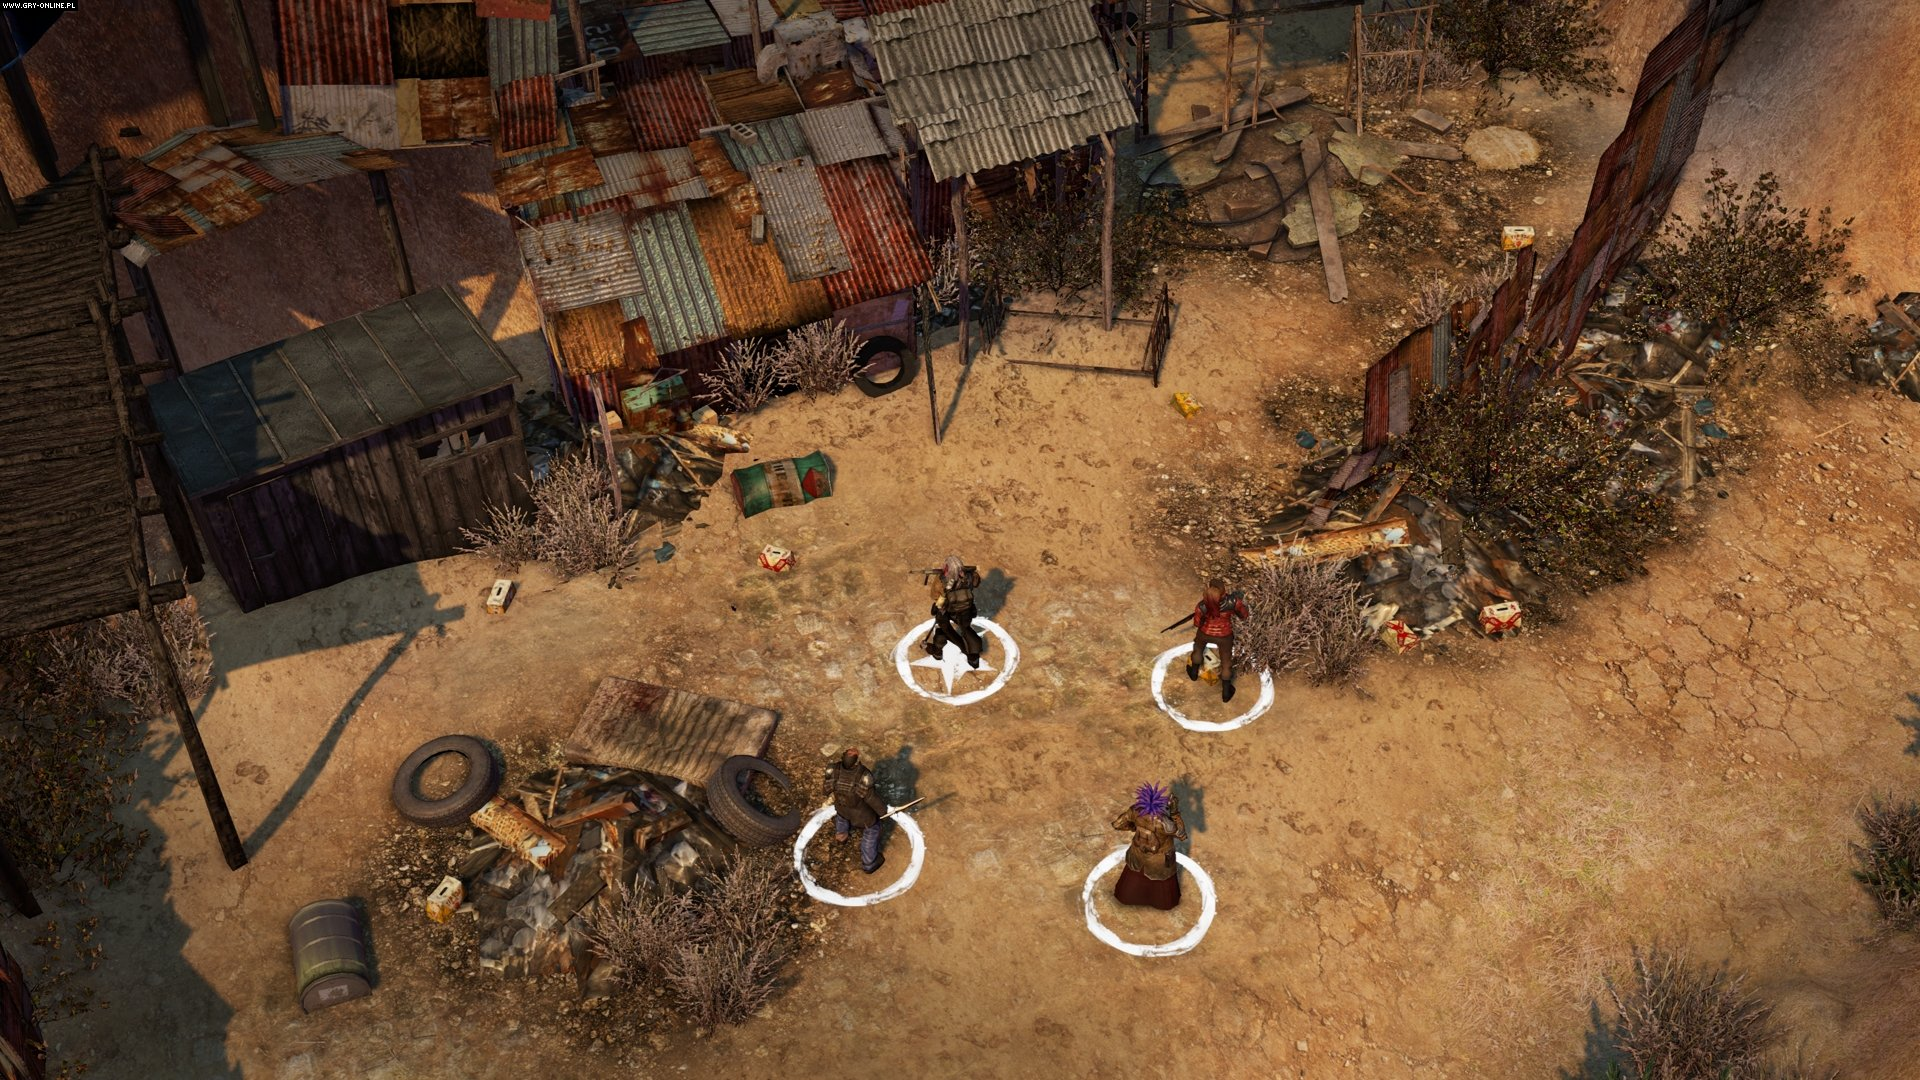 Wasteland 2 PC, PS4, XONE Games Image 8/42, inXile entertainment, Deep Silver / Koch Media